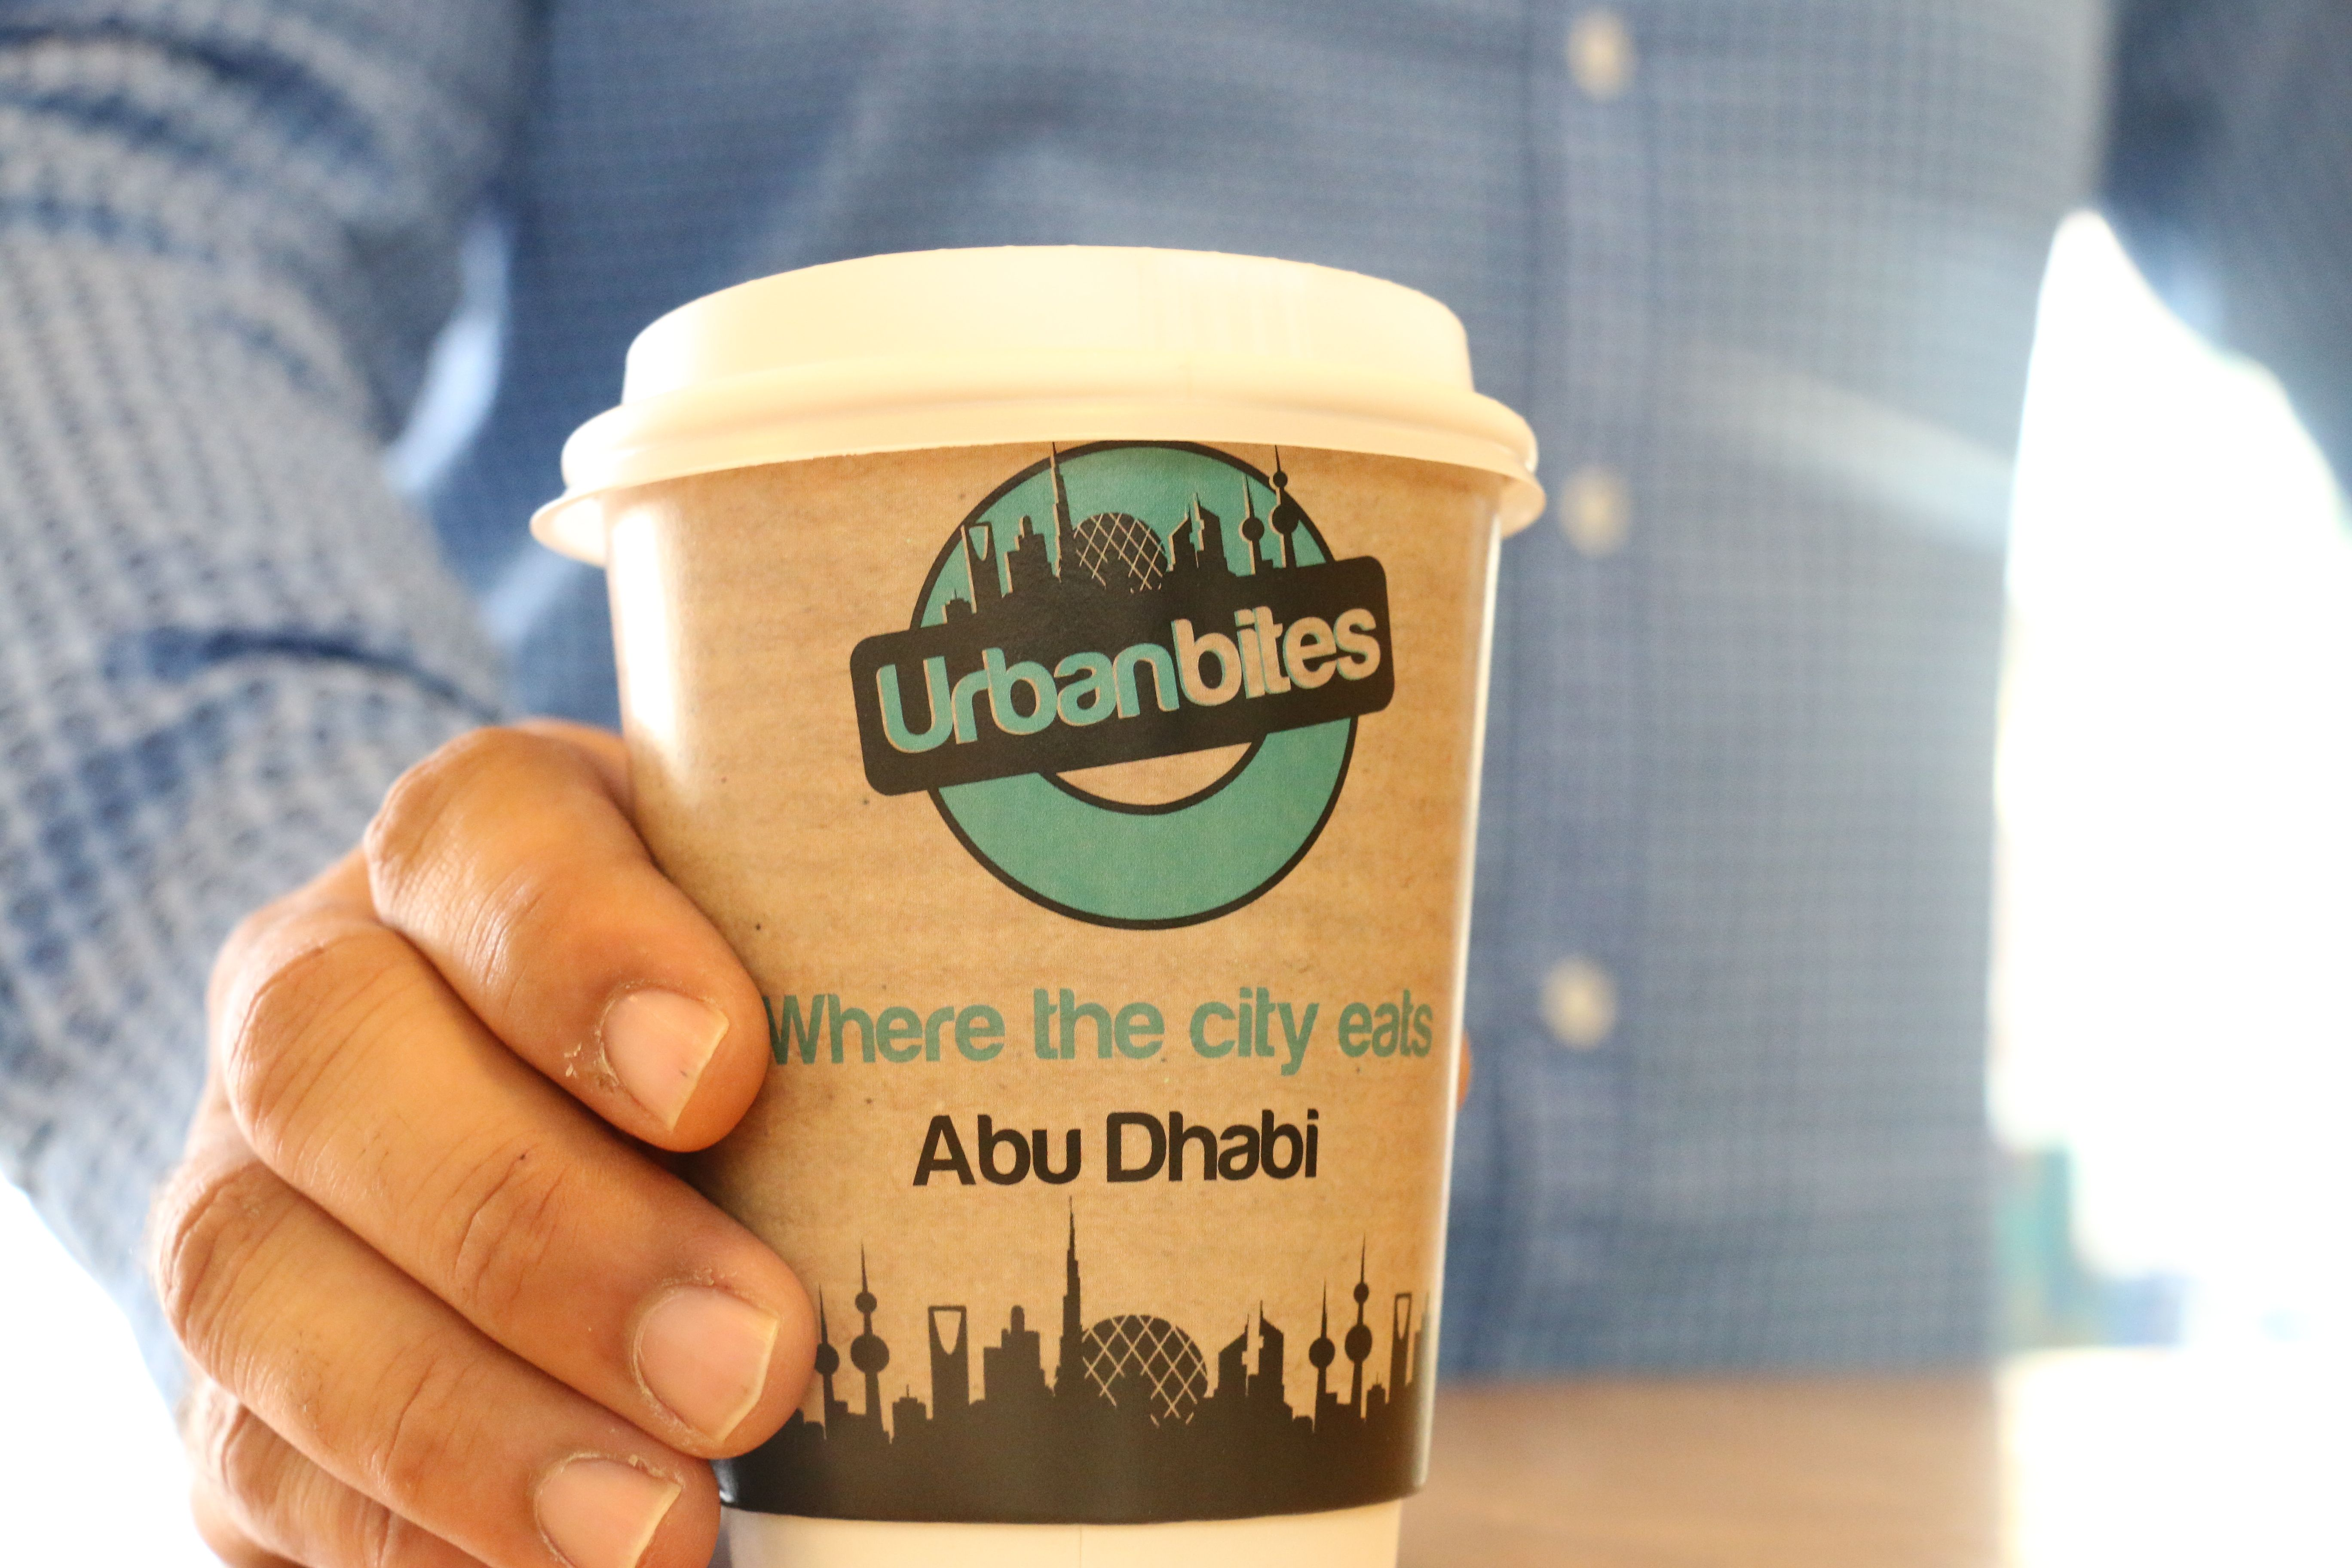 where the city eats in Abu Dhabi-> URBAN BITES